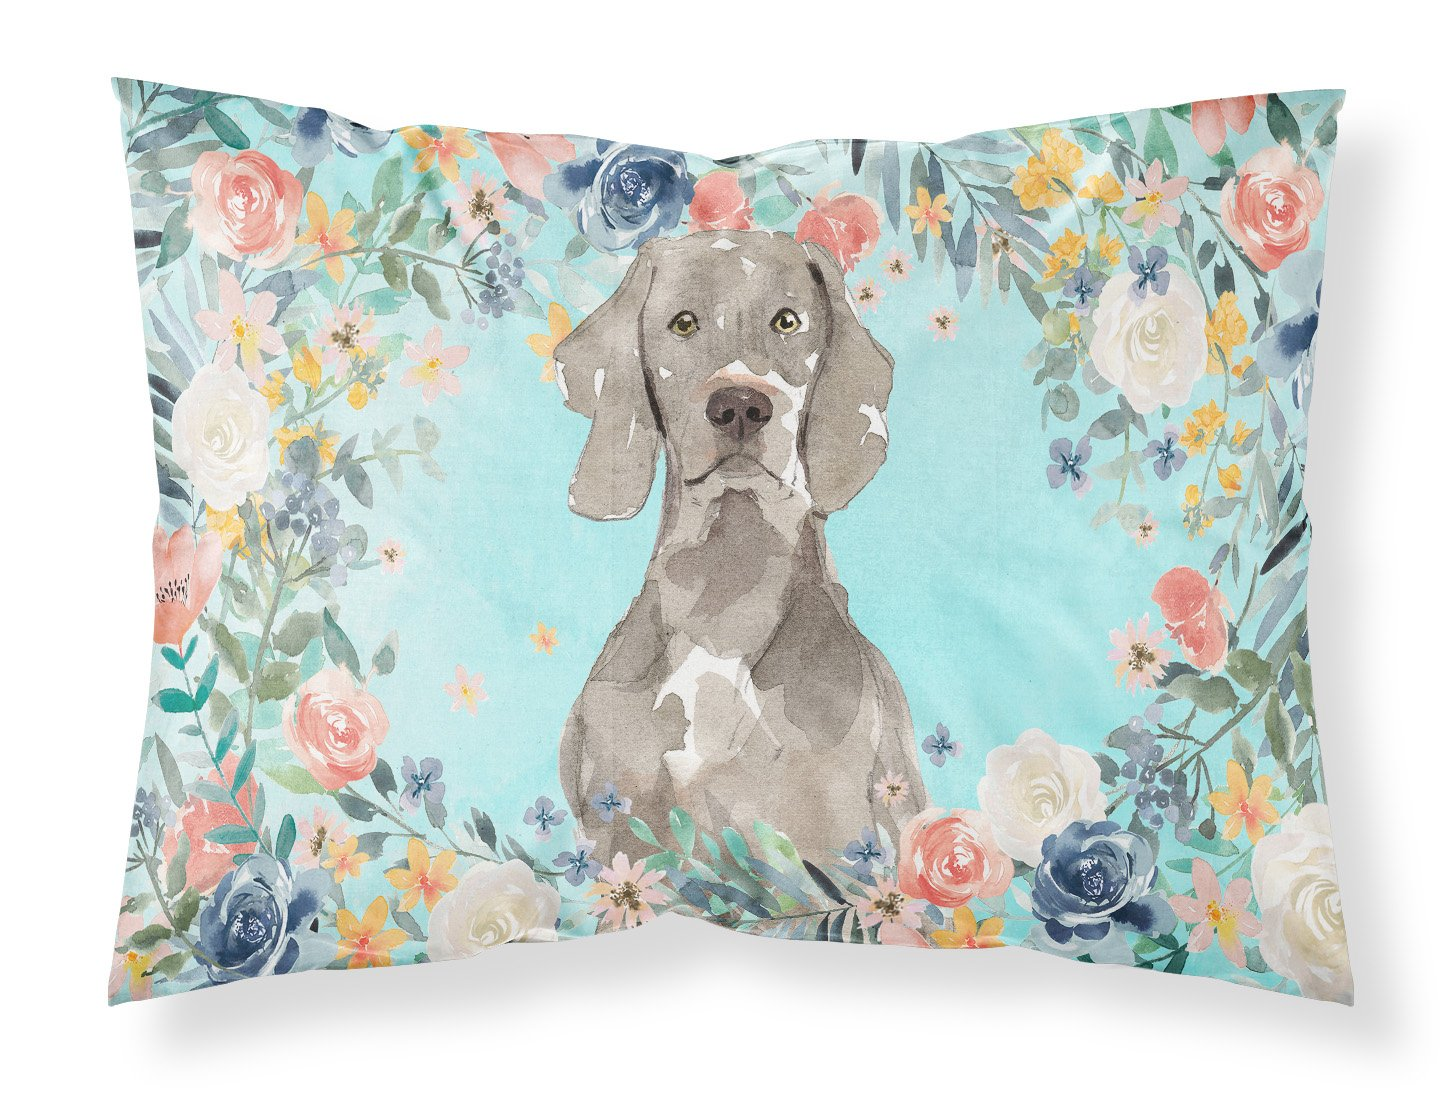 Buy this Weimaraner Fabric Standard Pillowcase CK3406PILLOWCASE